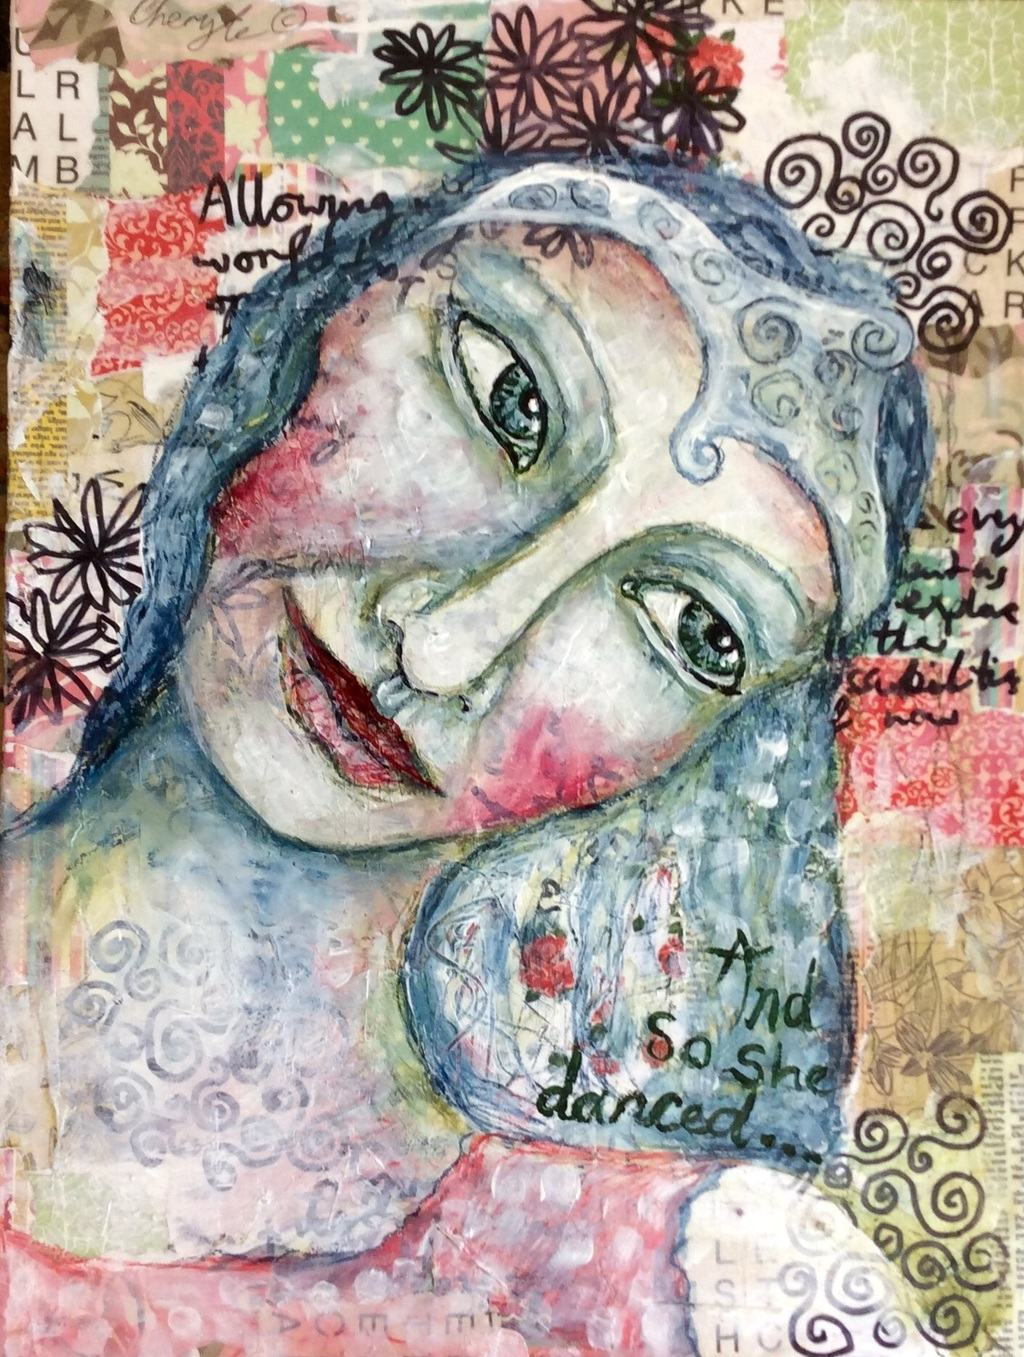 Mixed media play by Cheryle Bannon©